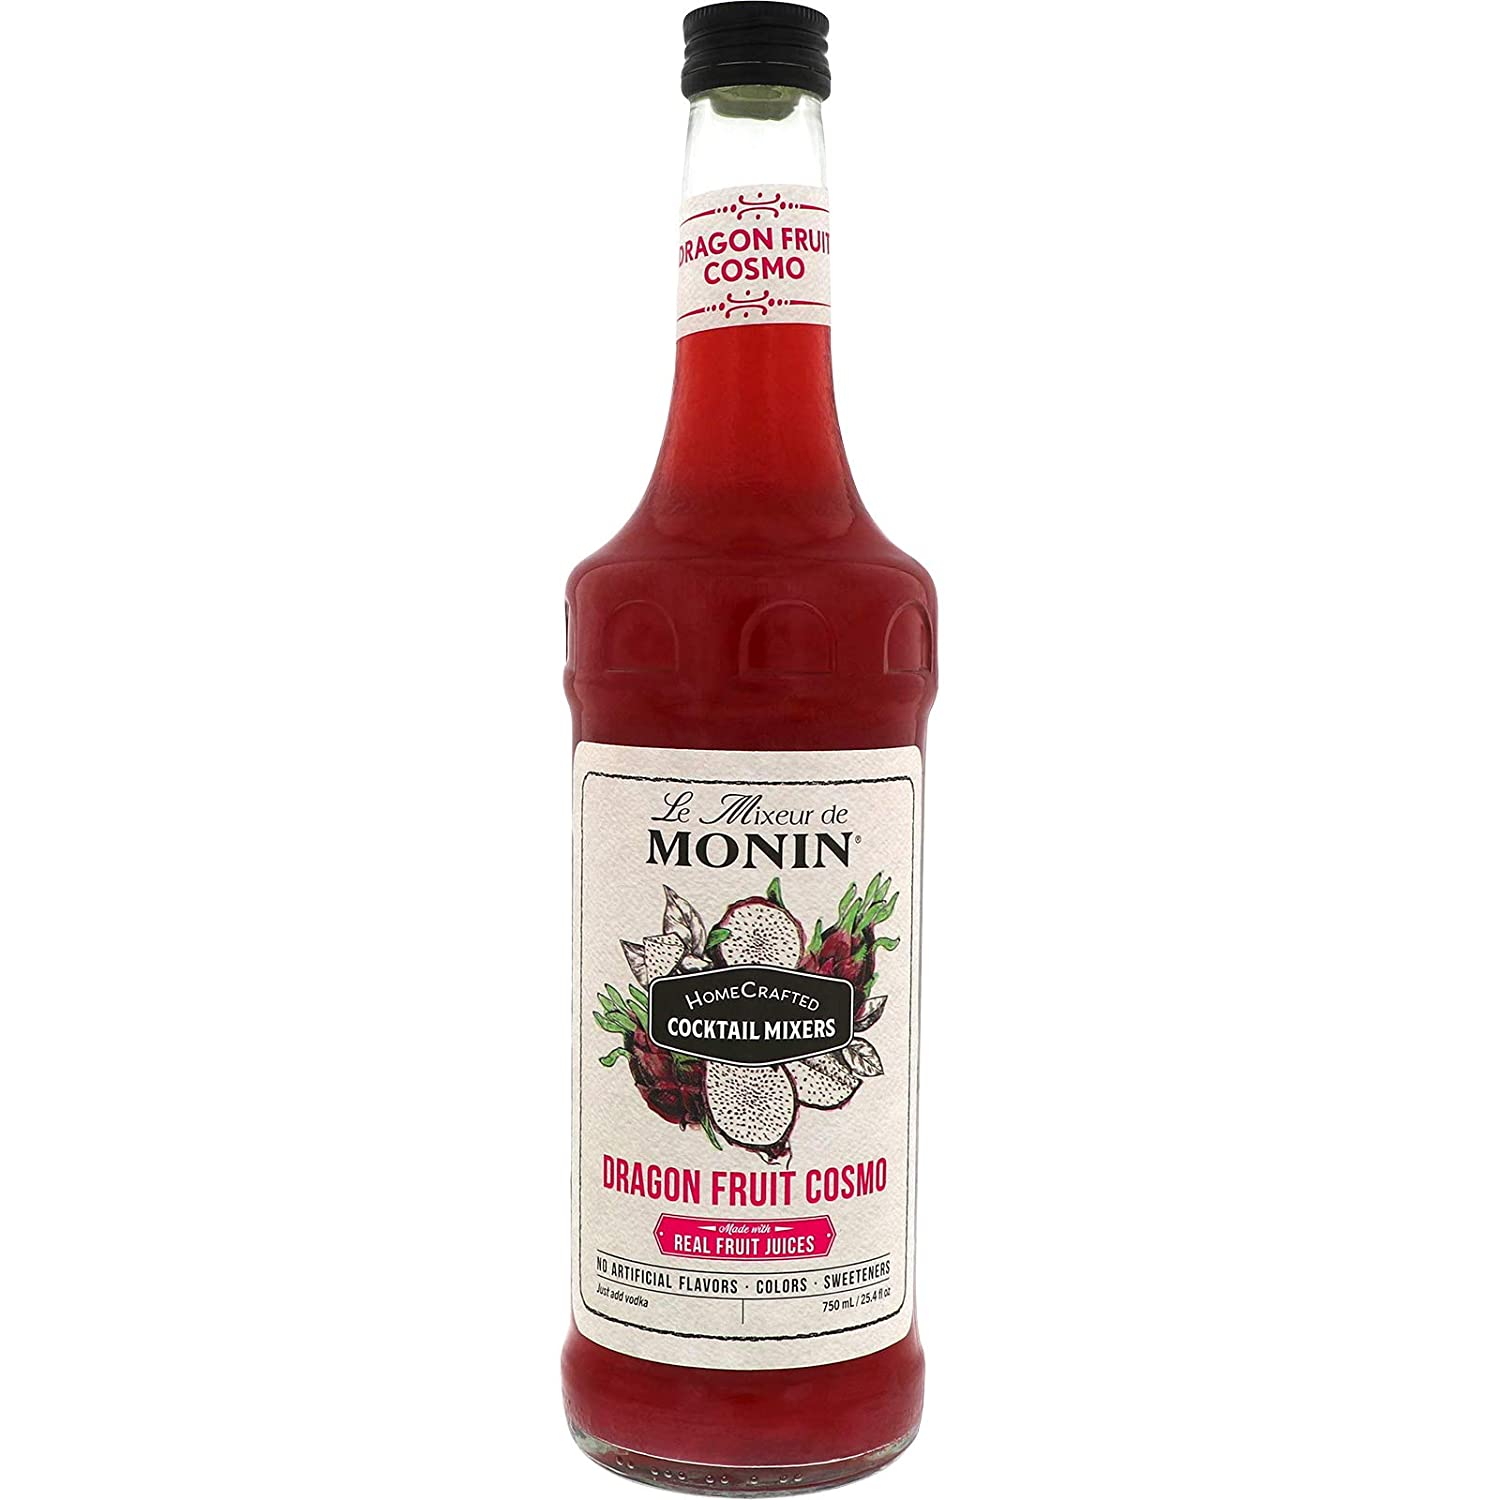 Monin - HomeCrafted Dragon Fruit Cosmo Cocktail Mix, Ready-to-Use Drink Mixer, Strawberry & Pear Blend, Made with Natural Flavors & Real Fruit Juice, DIY Cocktails, Just Add Vodka (750 ml)